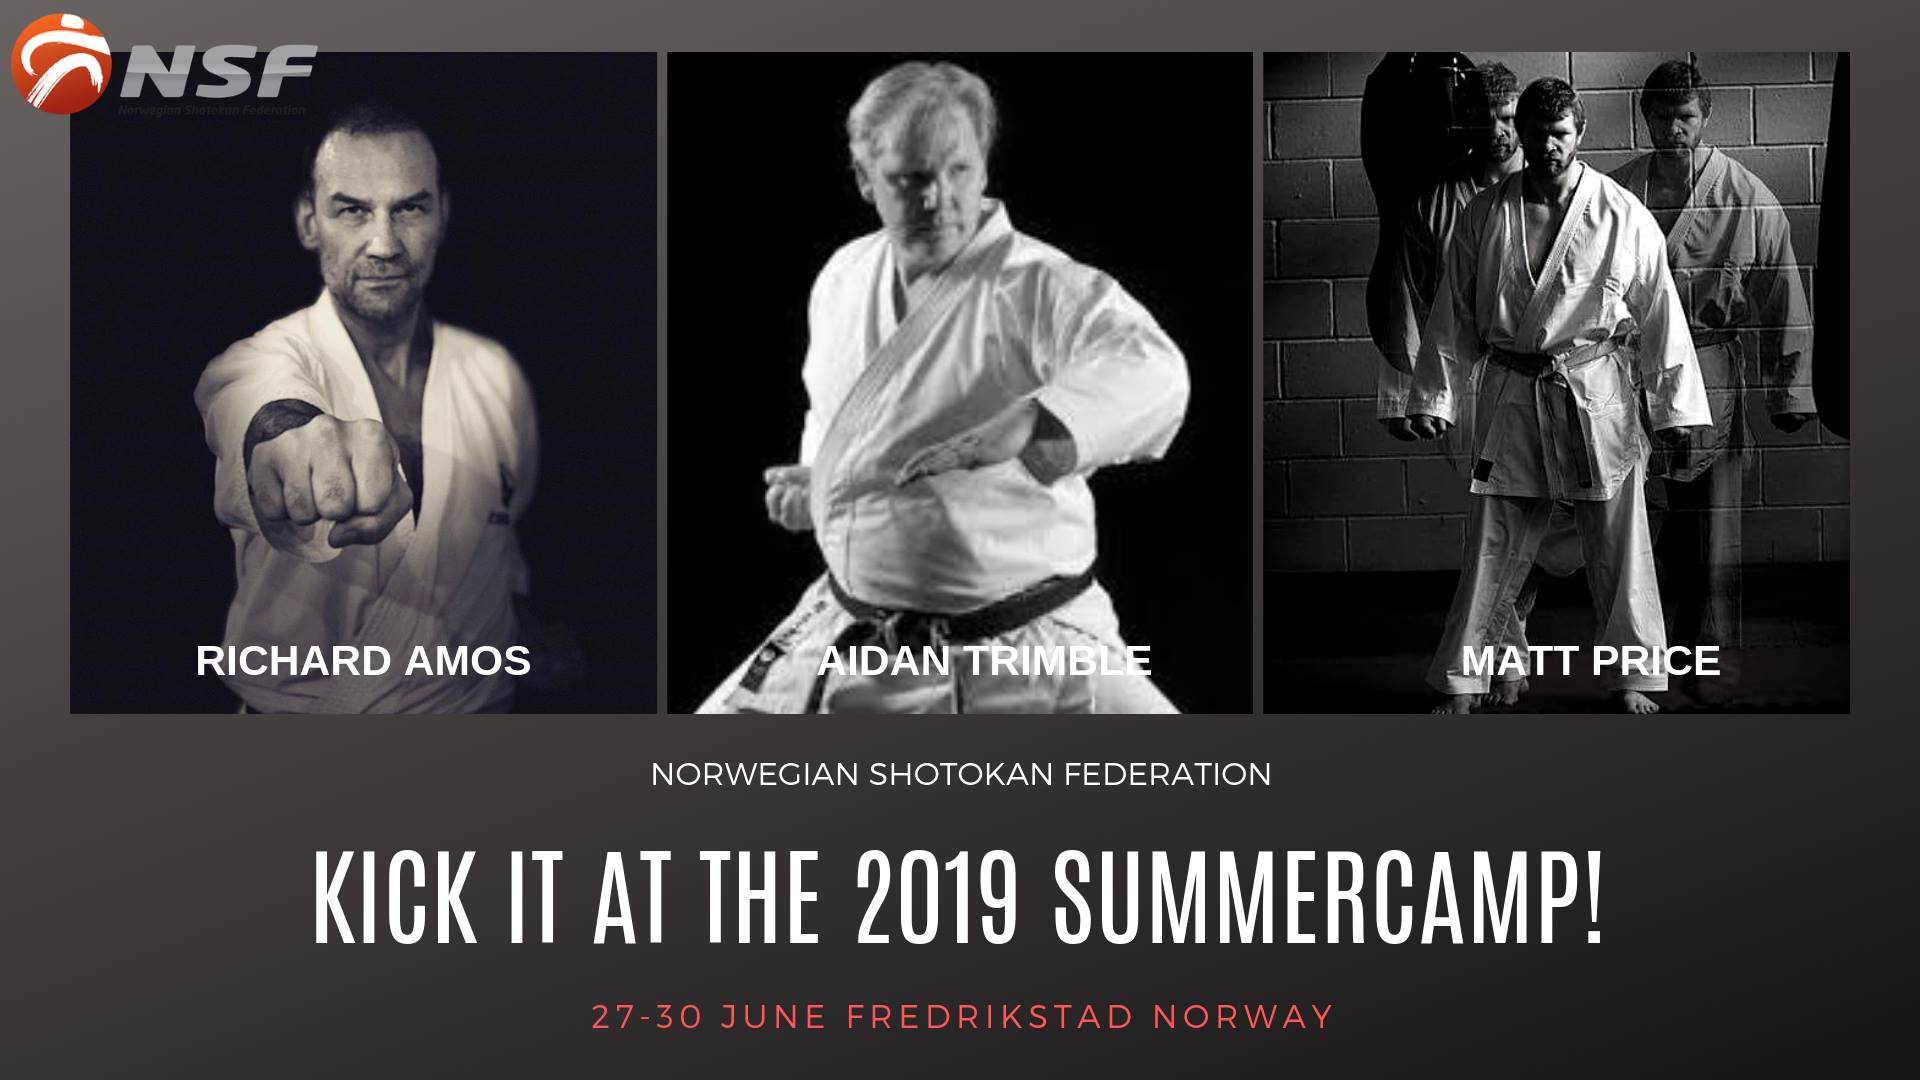 Reklame for 2019 Summercamp